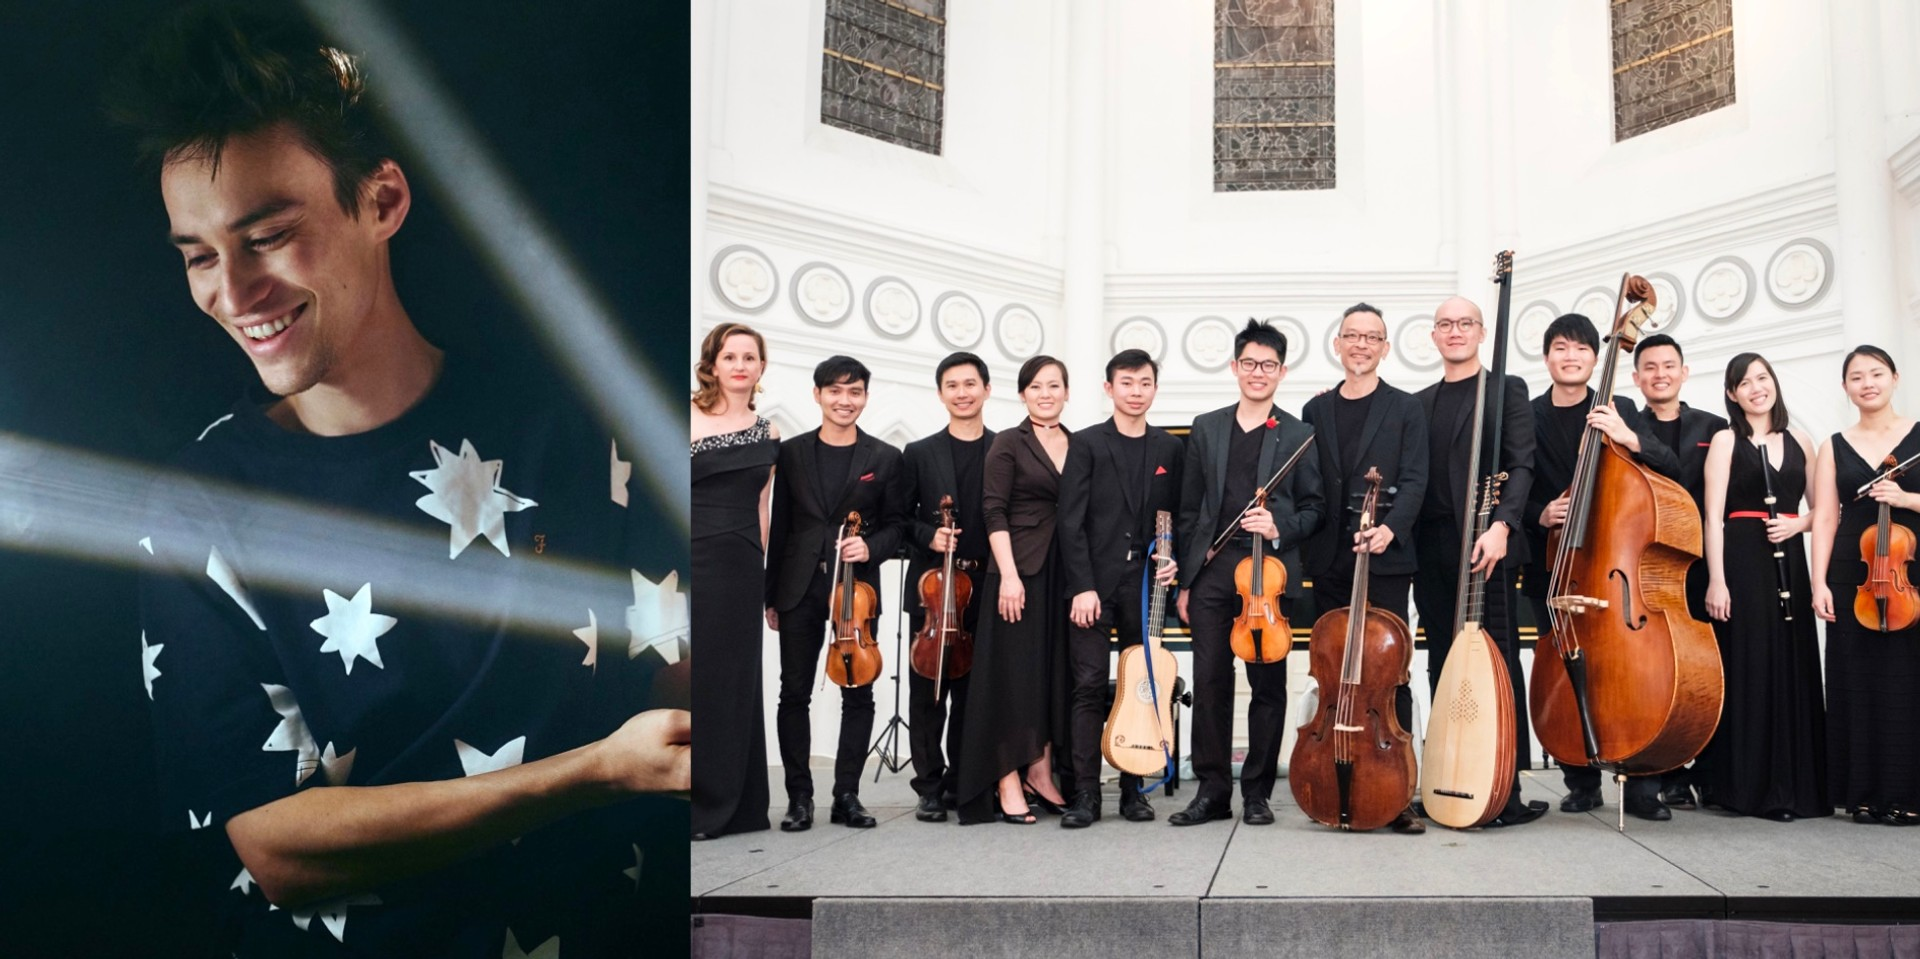 Jacob Collier, Red Dot Baroque, and SOURCE x Audible Lands join Singapore International Festival of Arts' virtual programmes